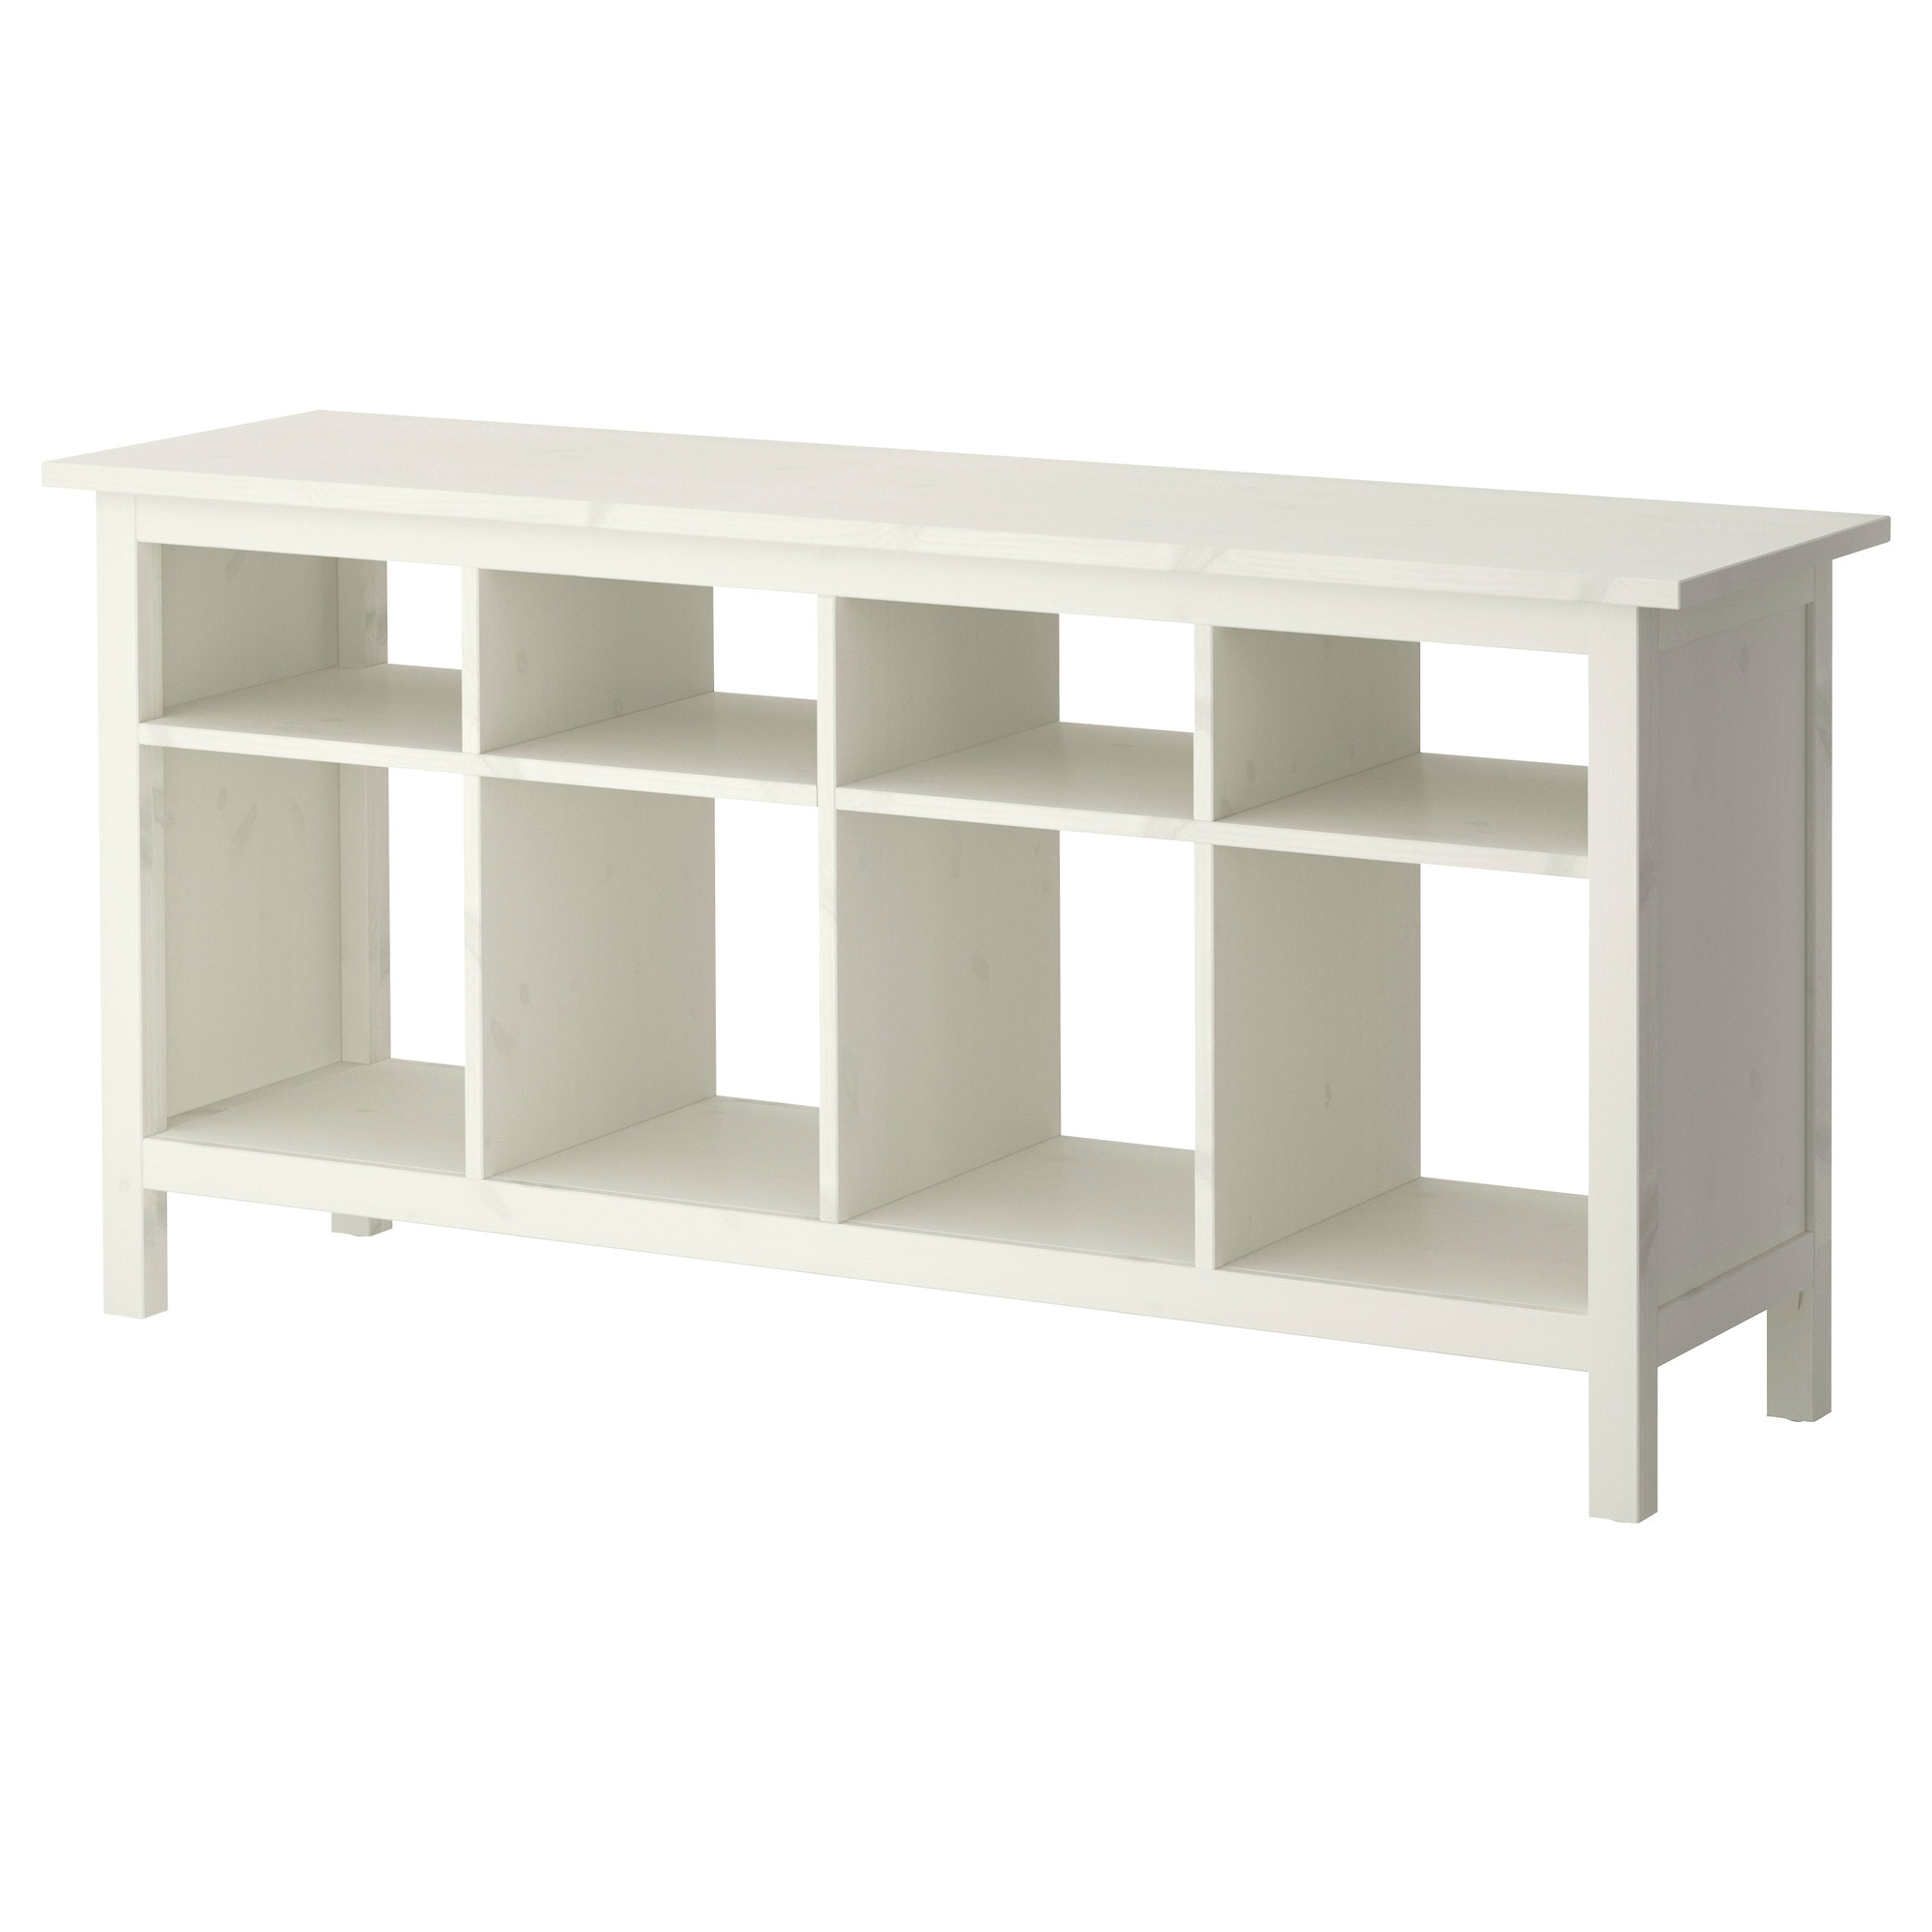 HEMNES Console table white stain IKEA